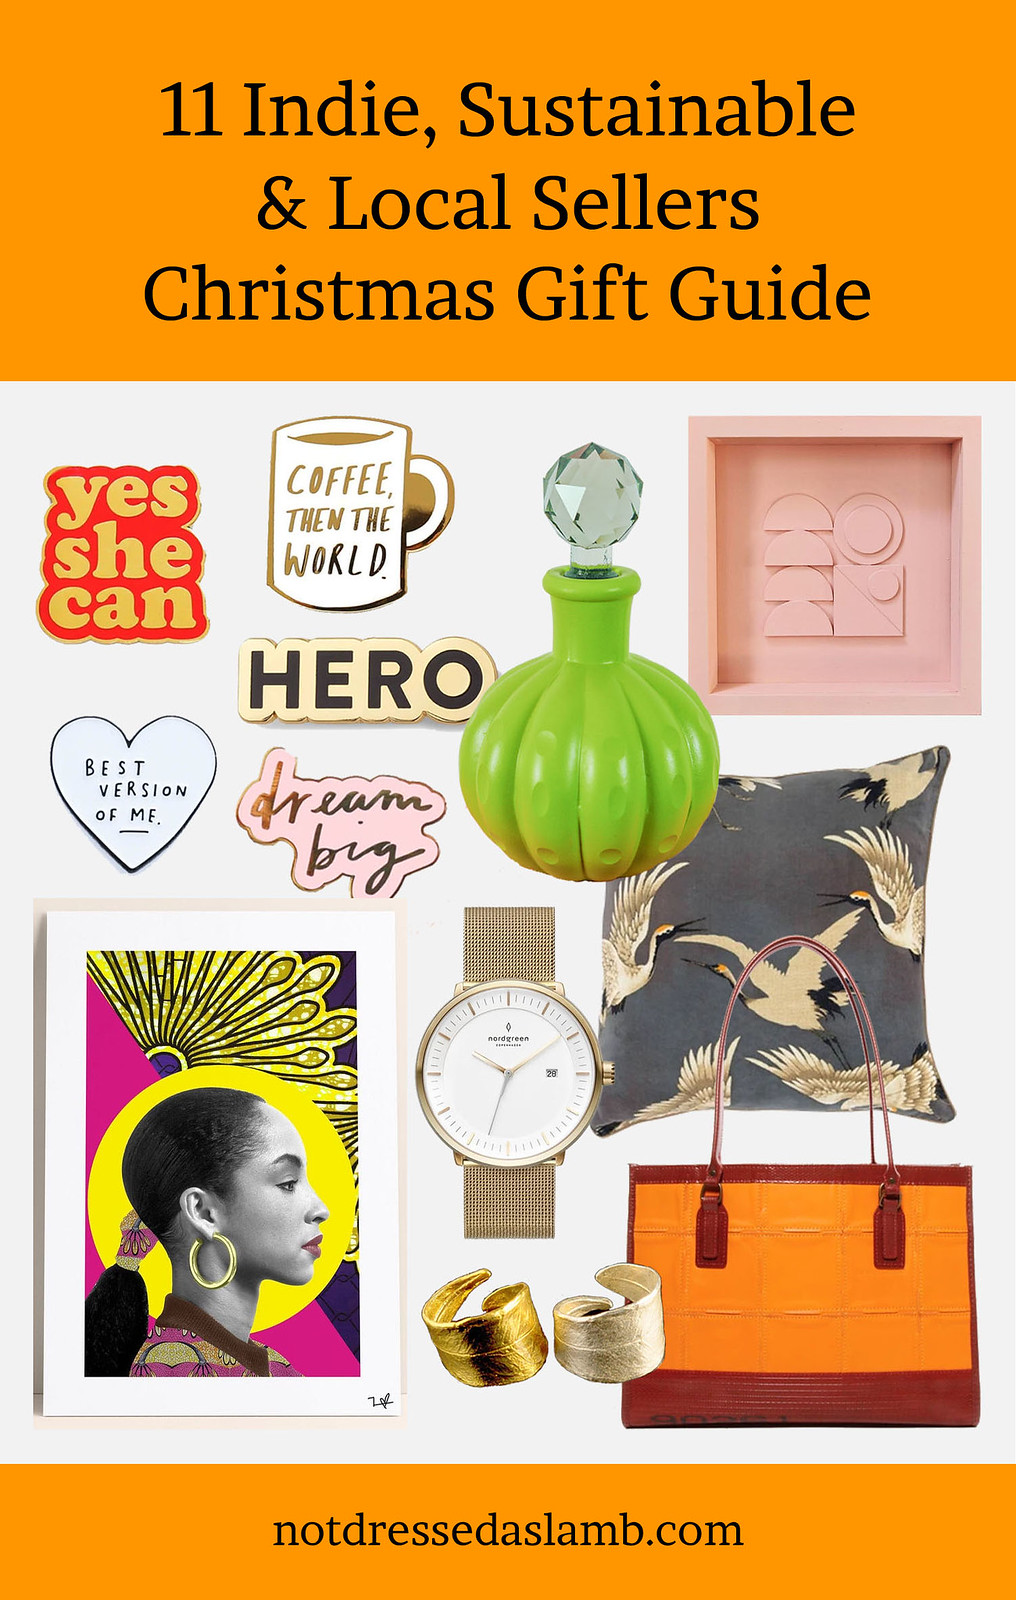 Alternative Christmas and Black Friday Gift Guide: 11 Indie, Sustainable and Local Sellers Curated by Not Dressed As Lamb